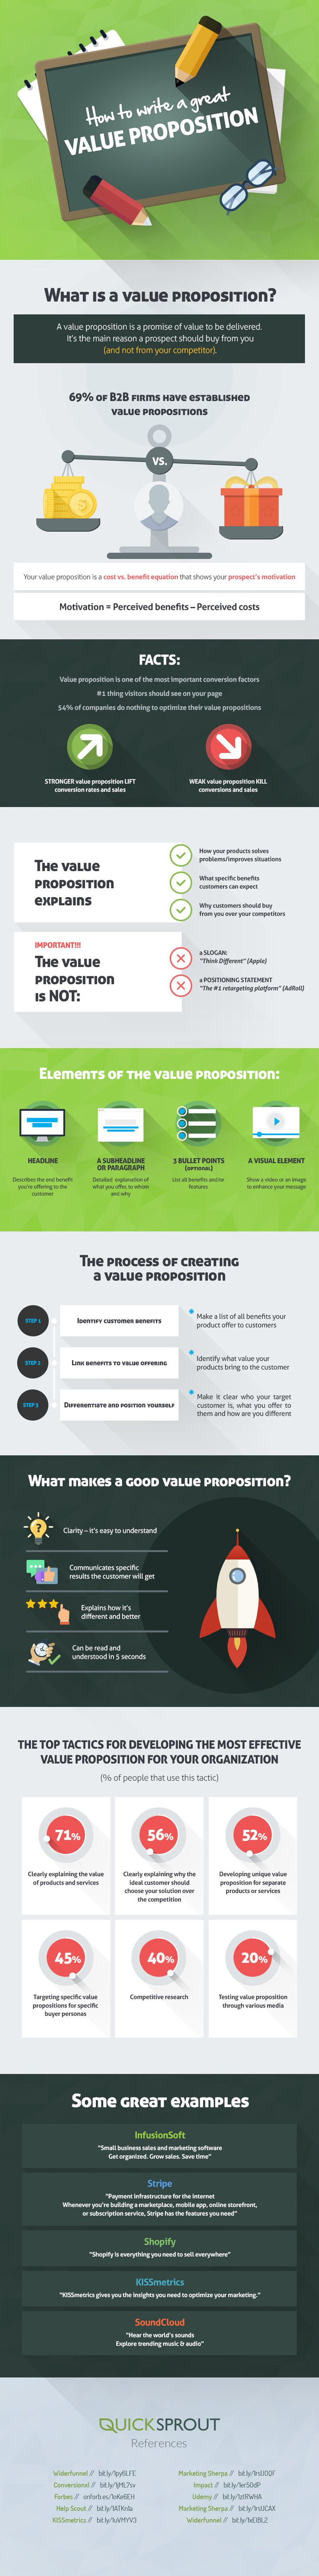 7 Best Marketing Value Proposition Examples